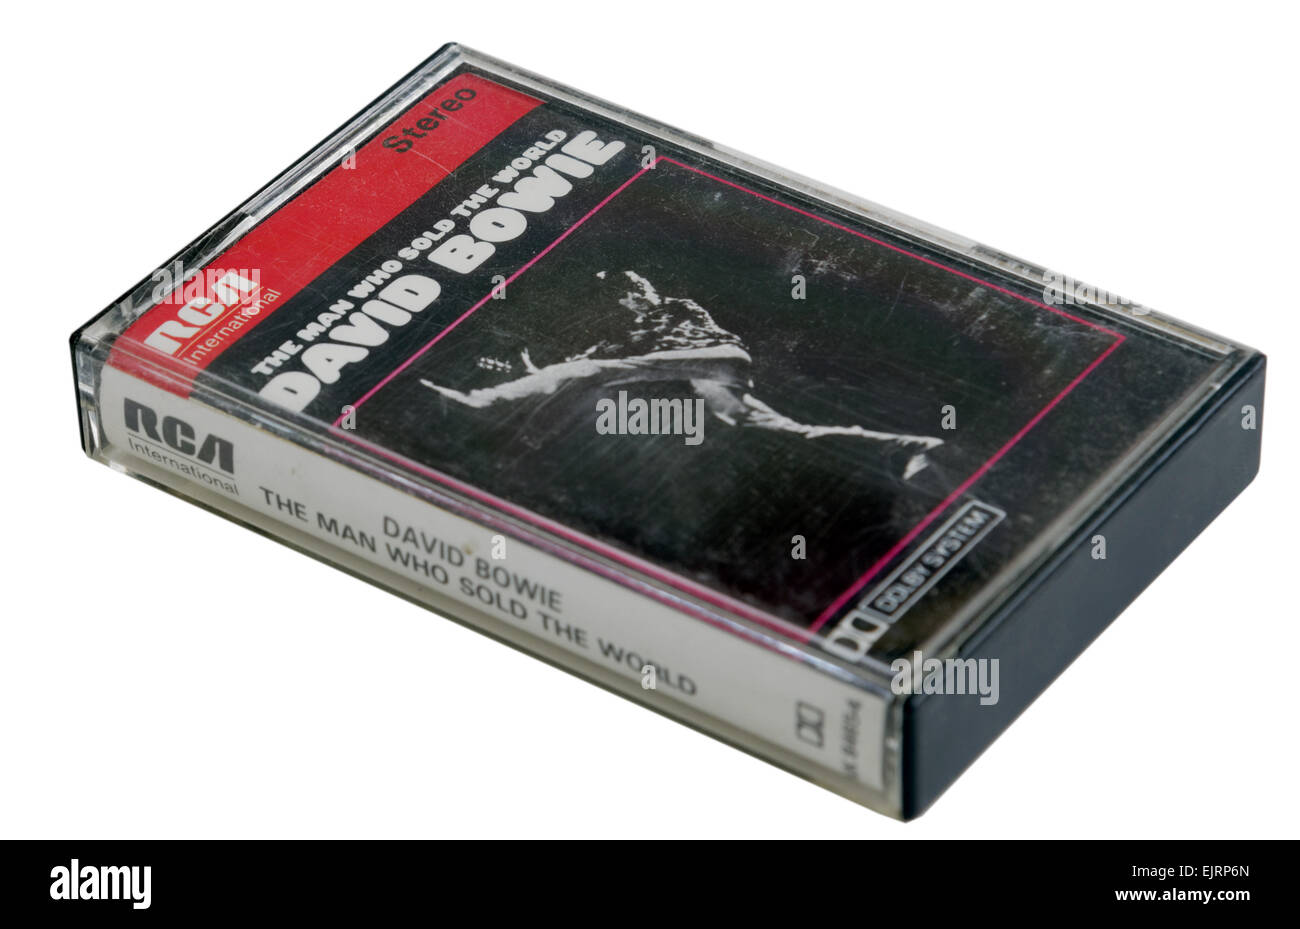 The Man Who Sold the World by David Bowie on cassette tape - Stock Image